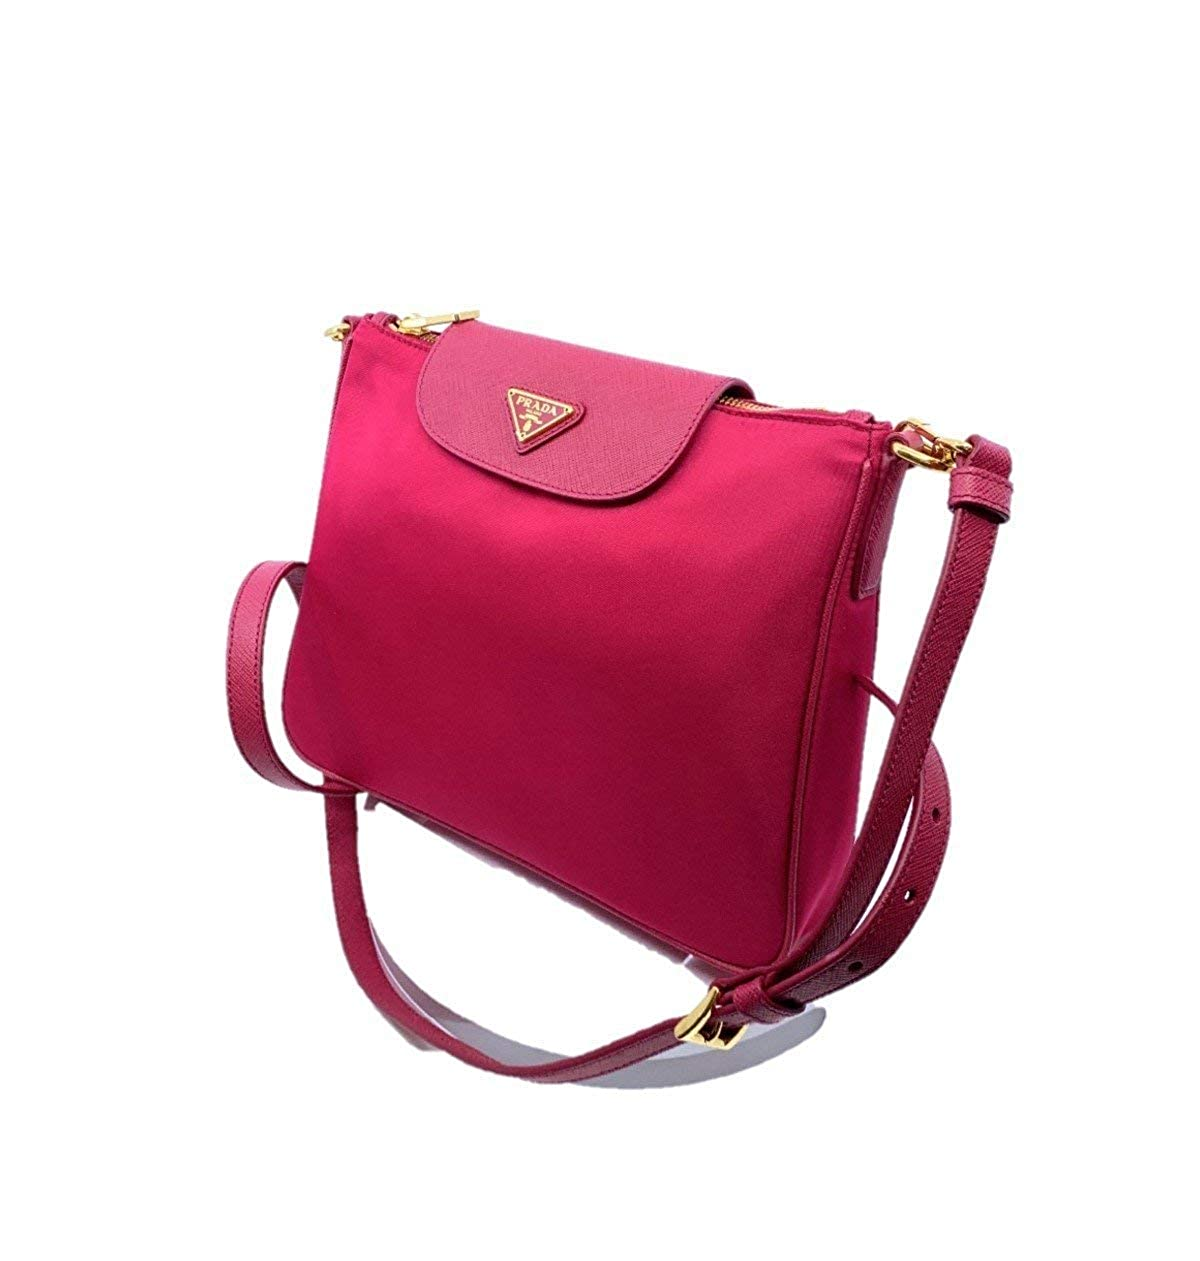 f82900e836 Prada Women's Tessuto Saffiano Pink Ibisco Nylon Crossbody Bag Handbag  1BH933: Handbags: Amazon.com